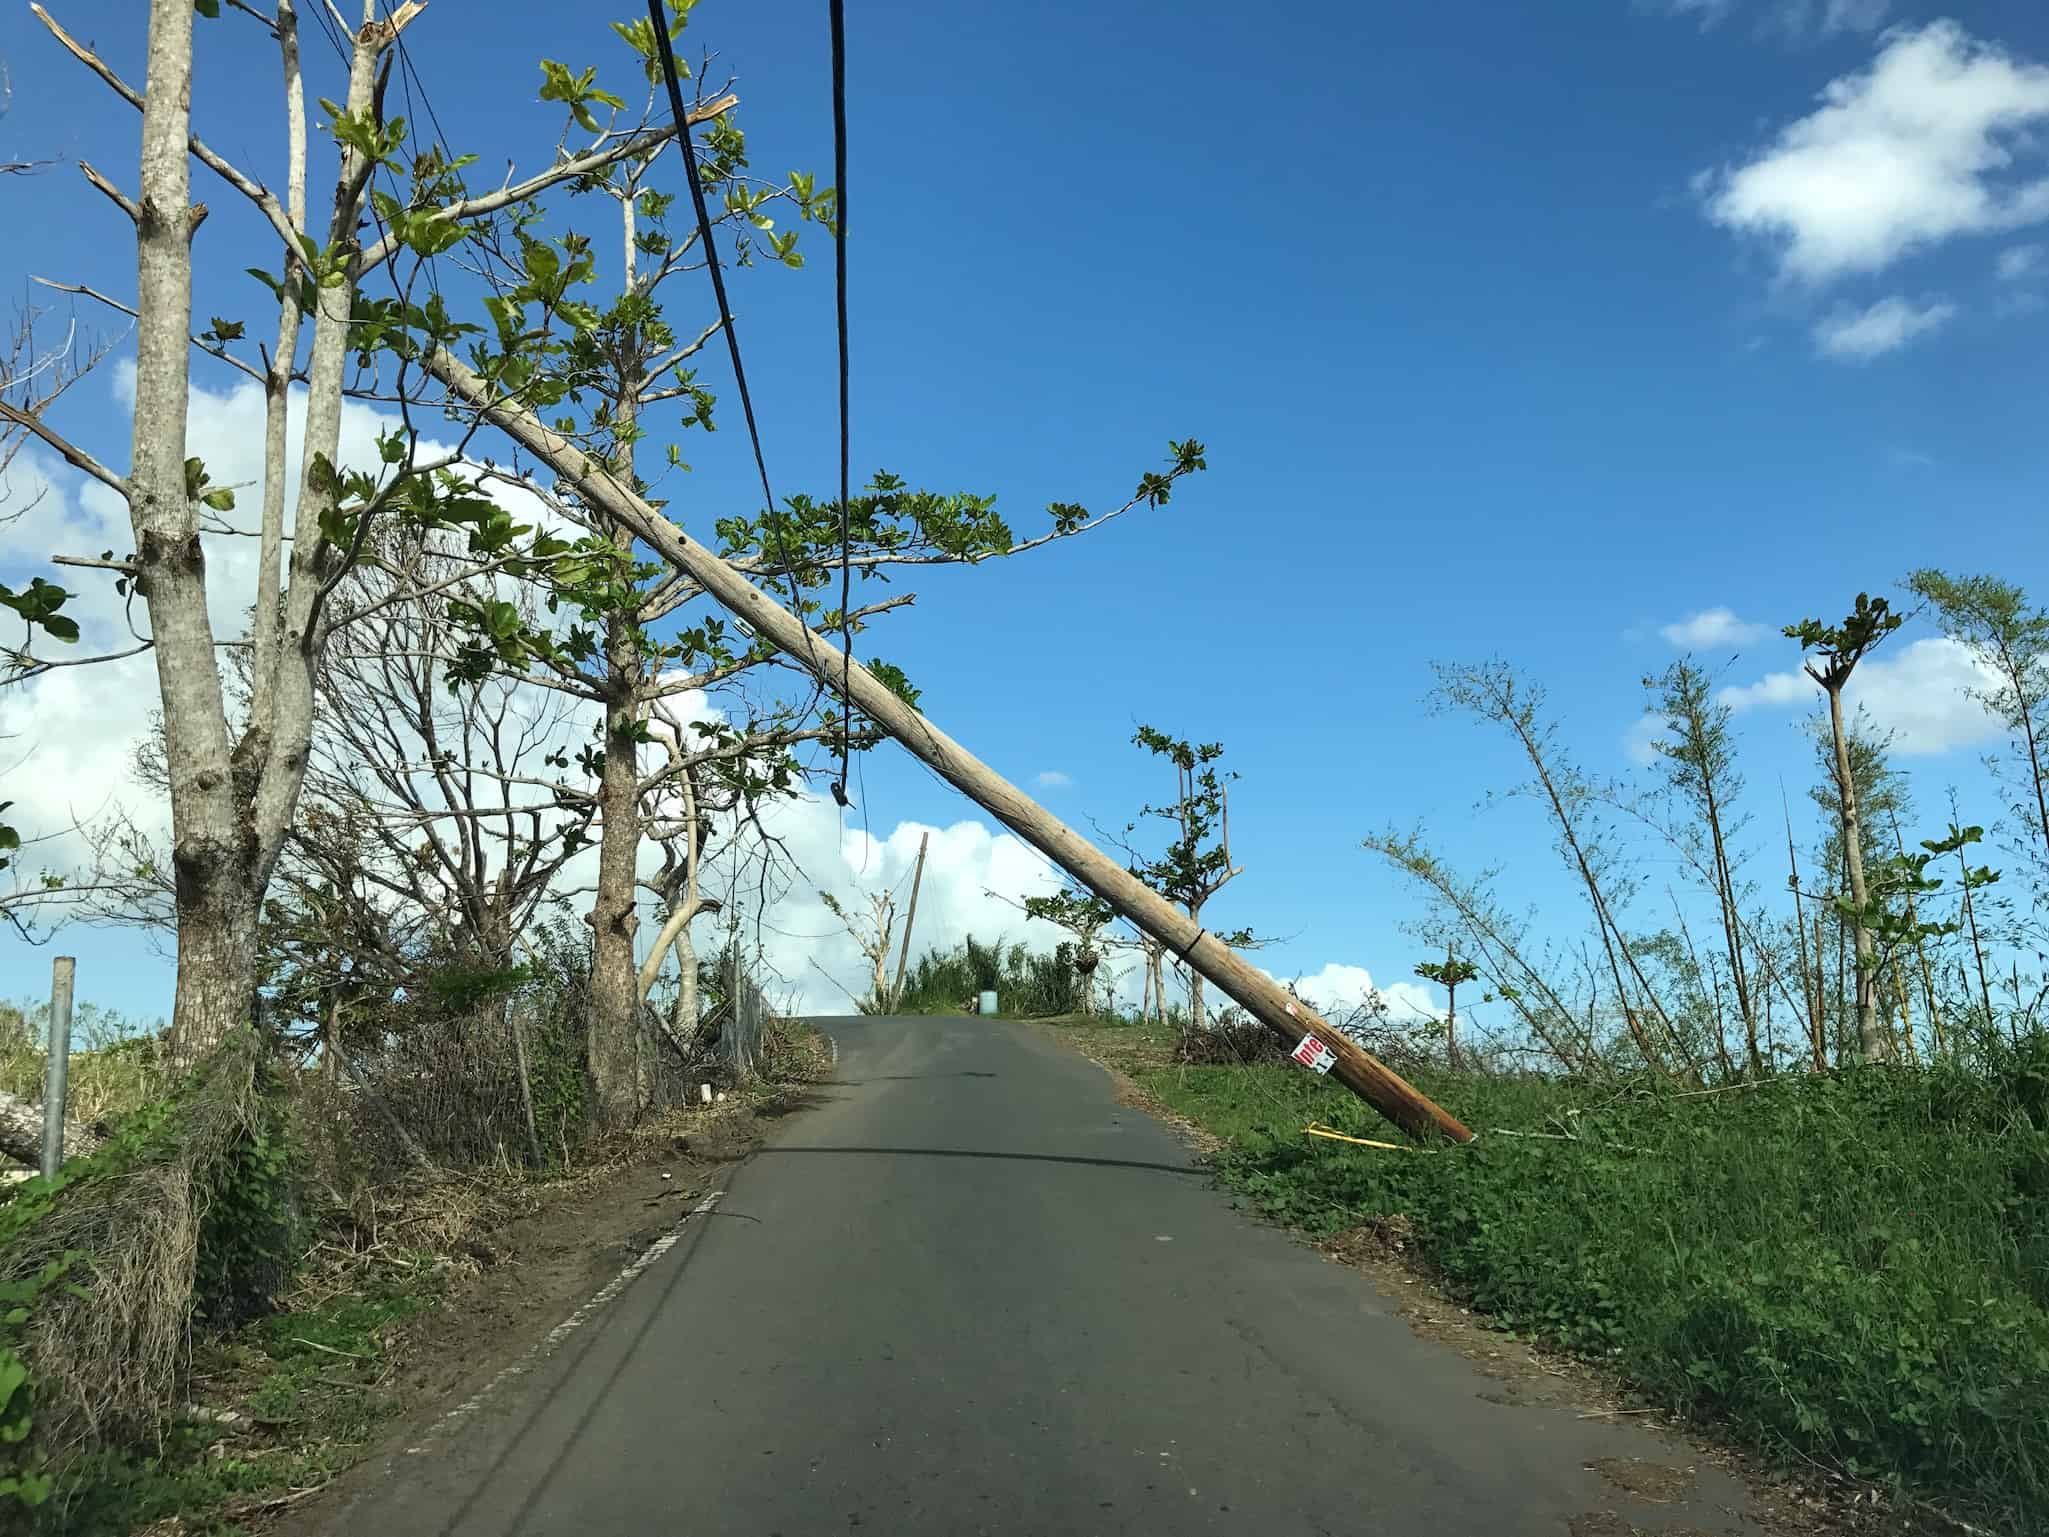 A utility pole fell over a road